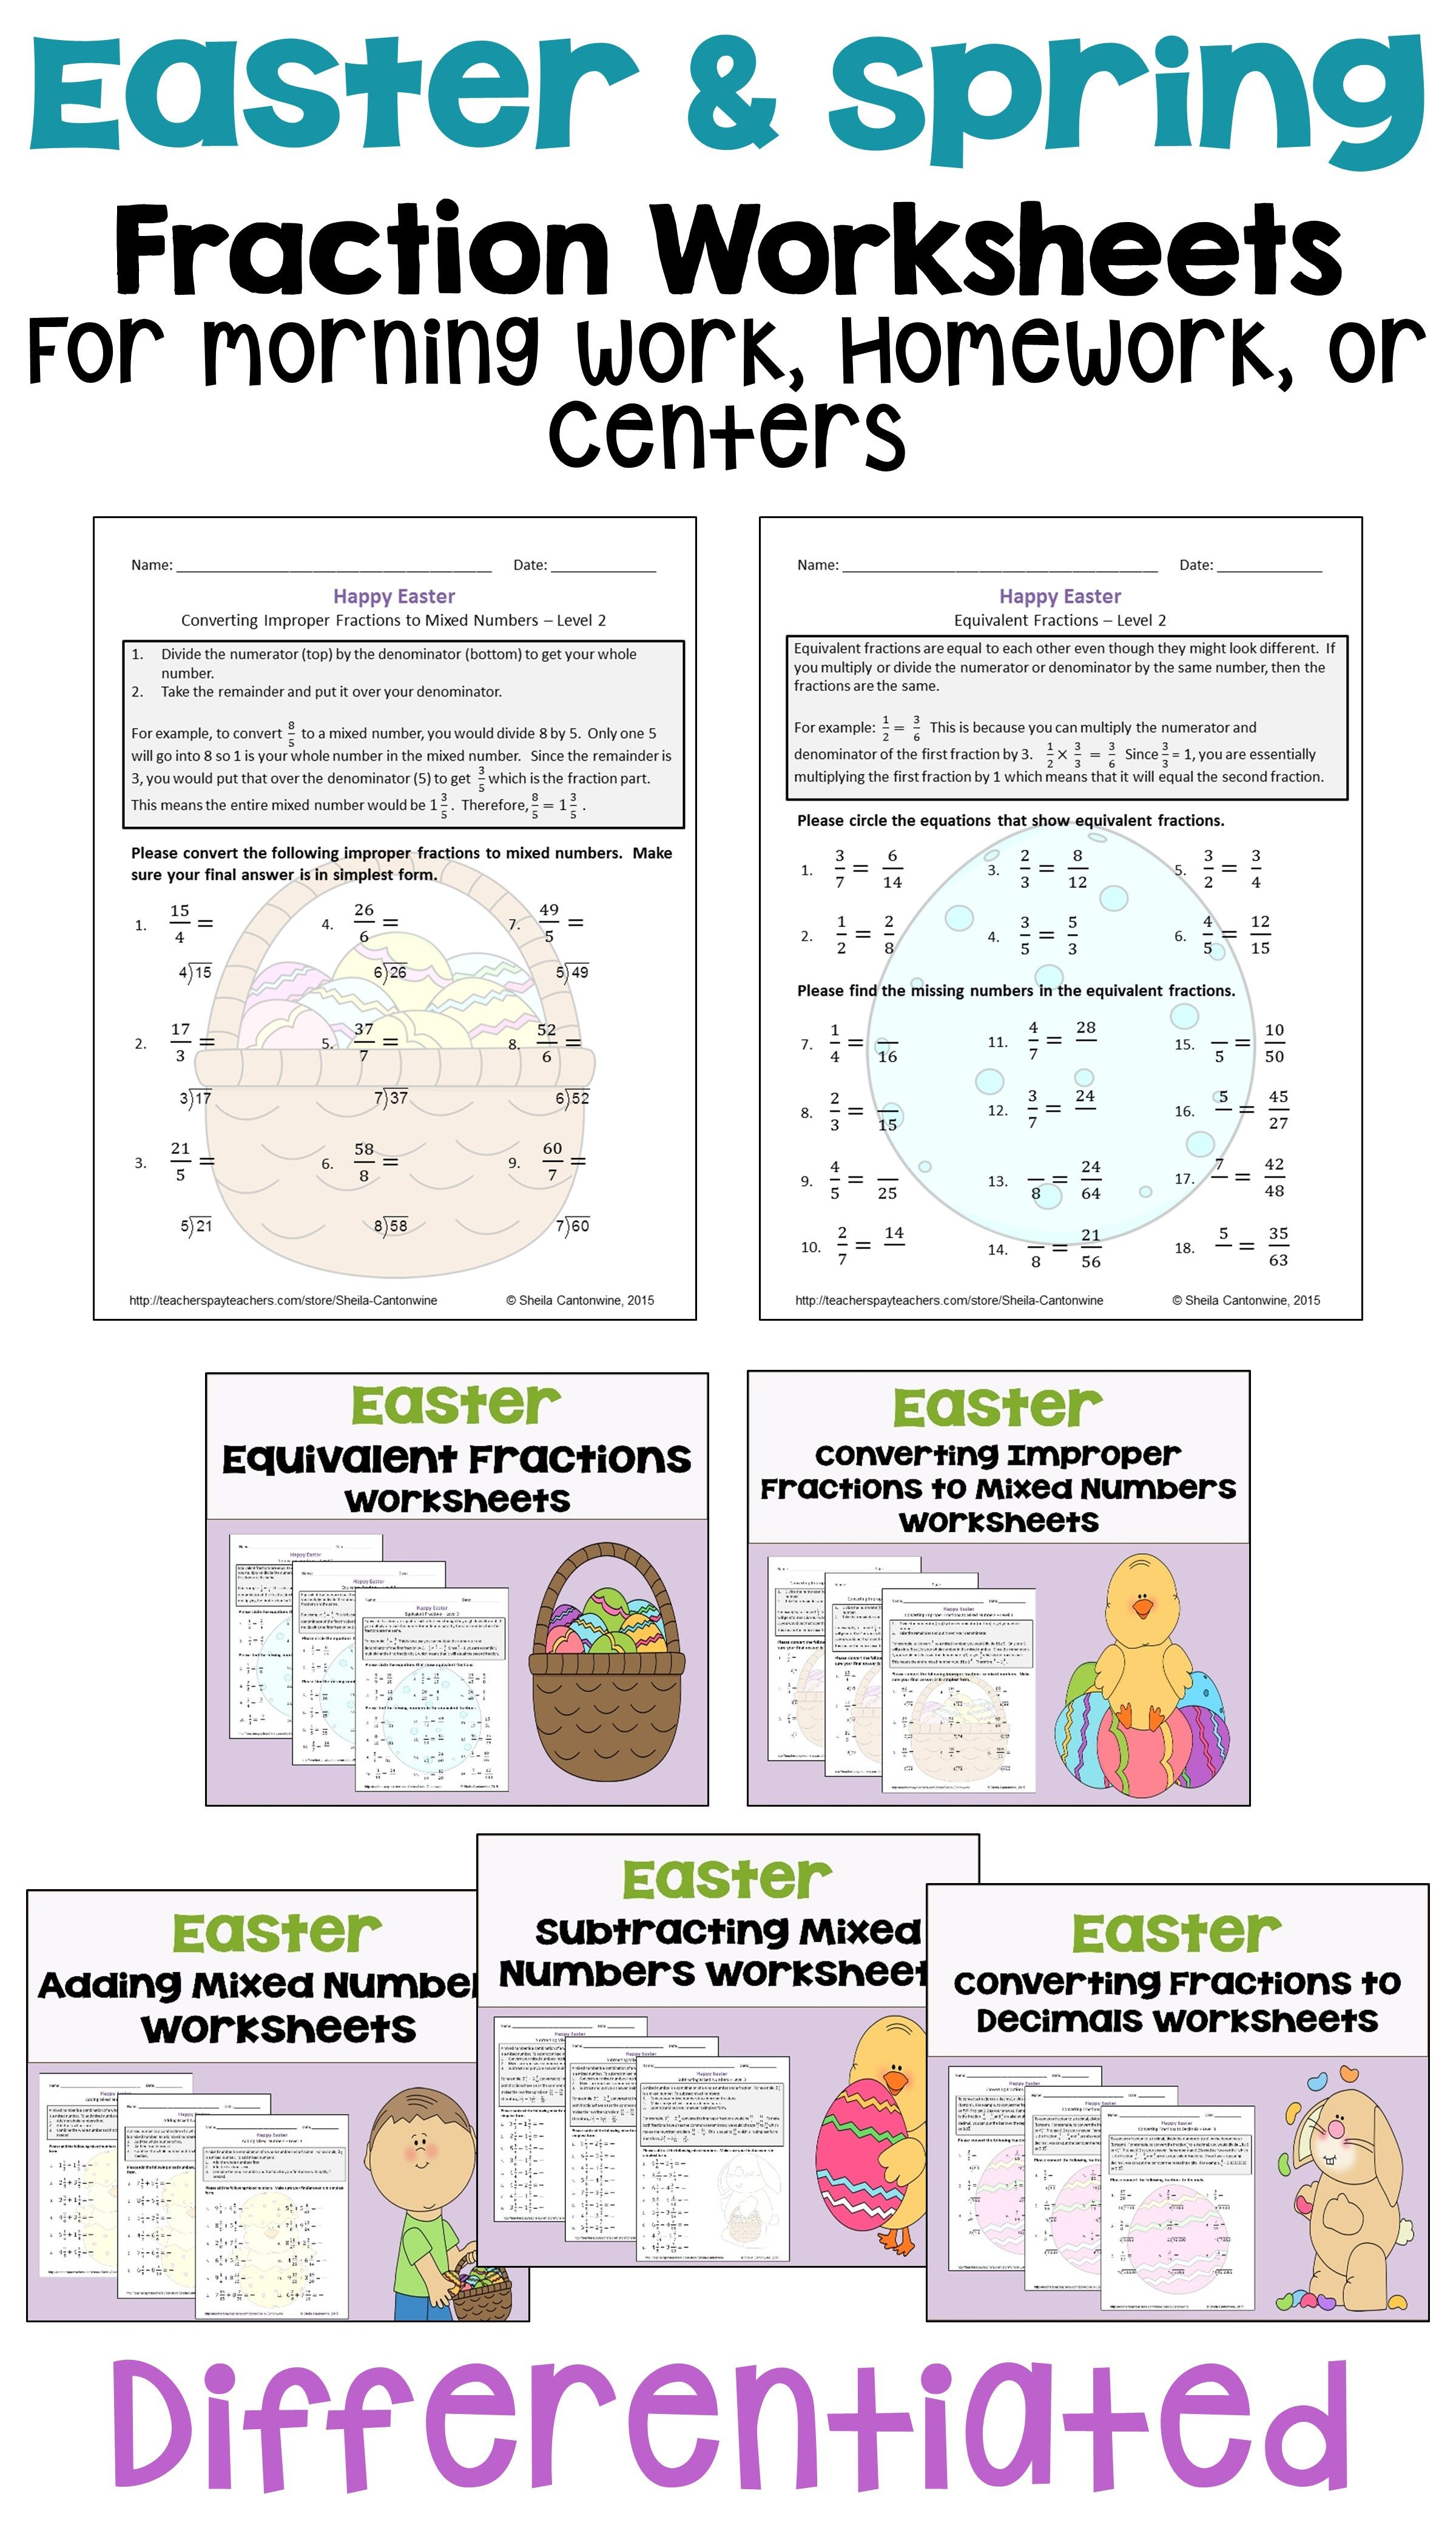 Easter Fraction Worksheet Bundle Differentiated With 3